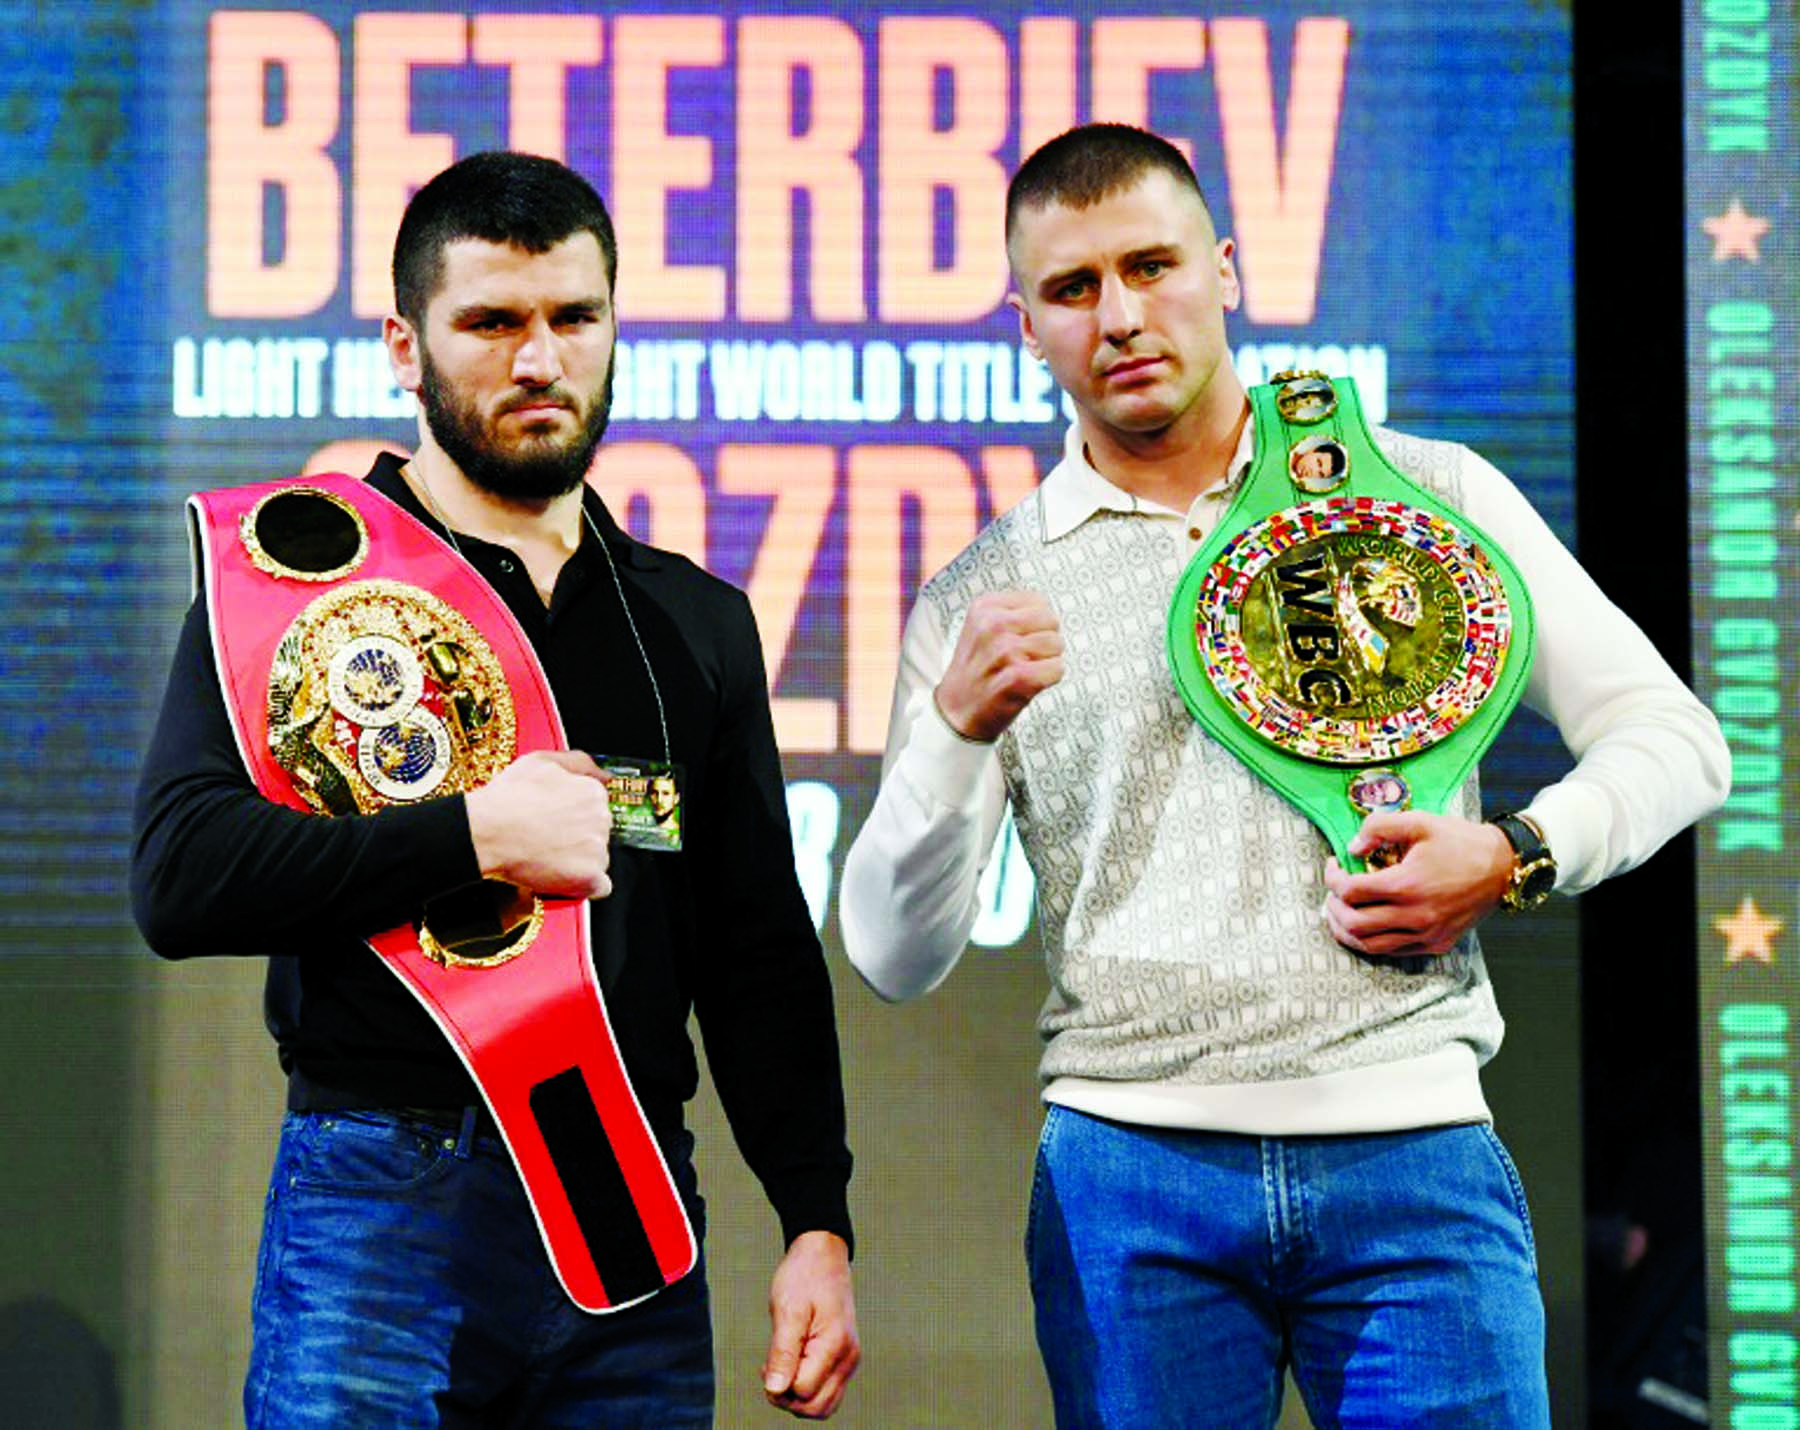 Russia's Beterbiev stops Gvozdyk to unify two titles